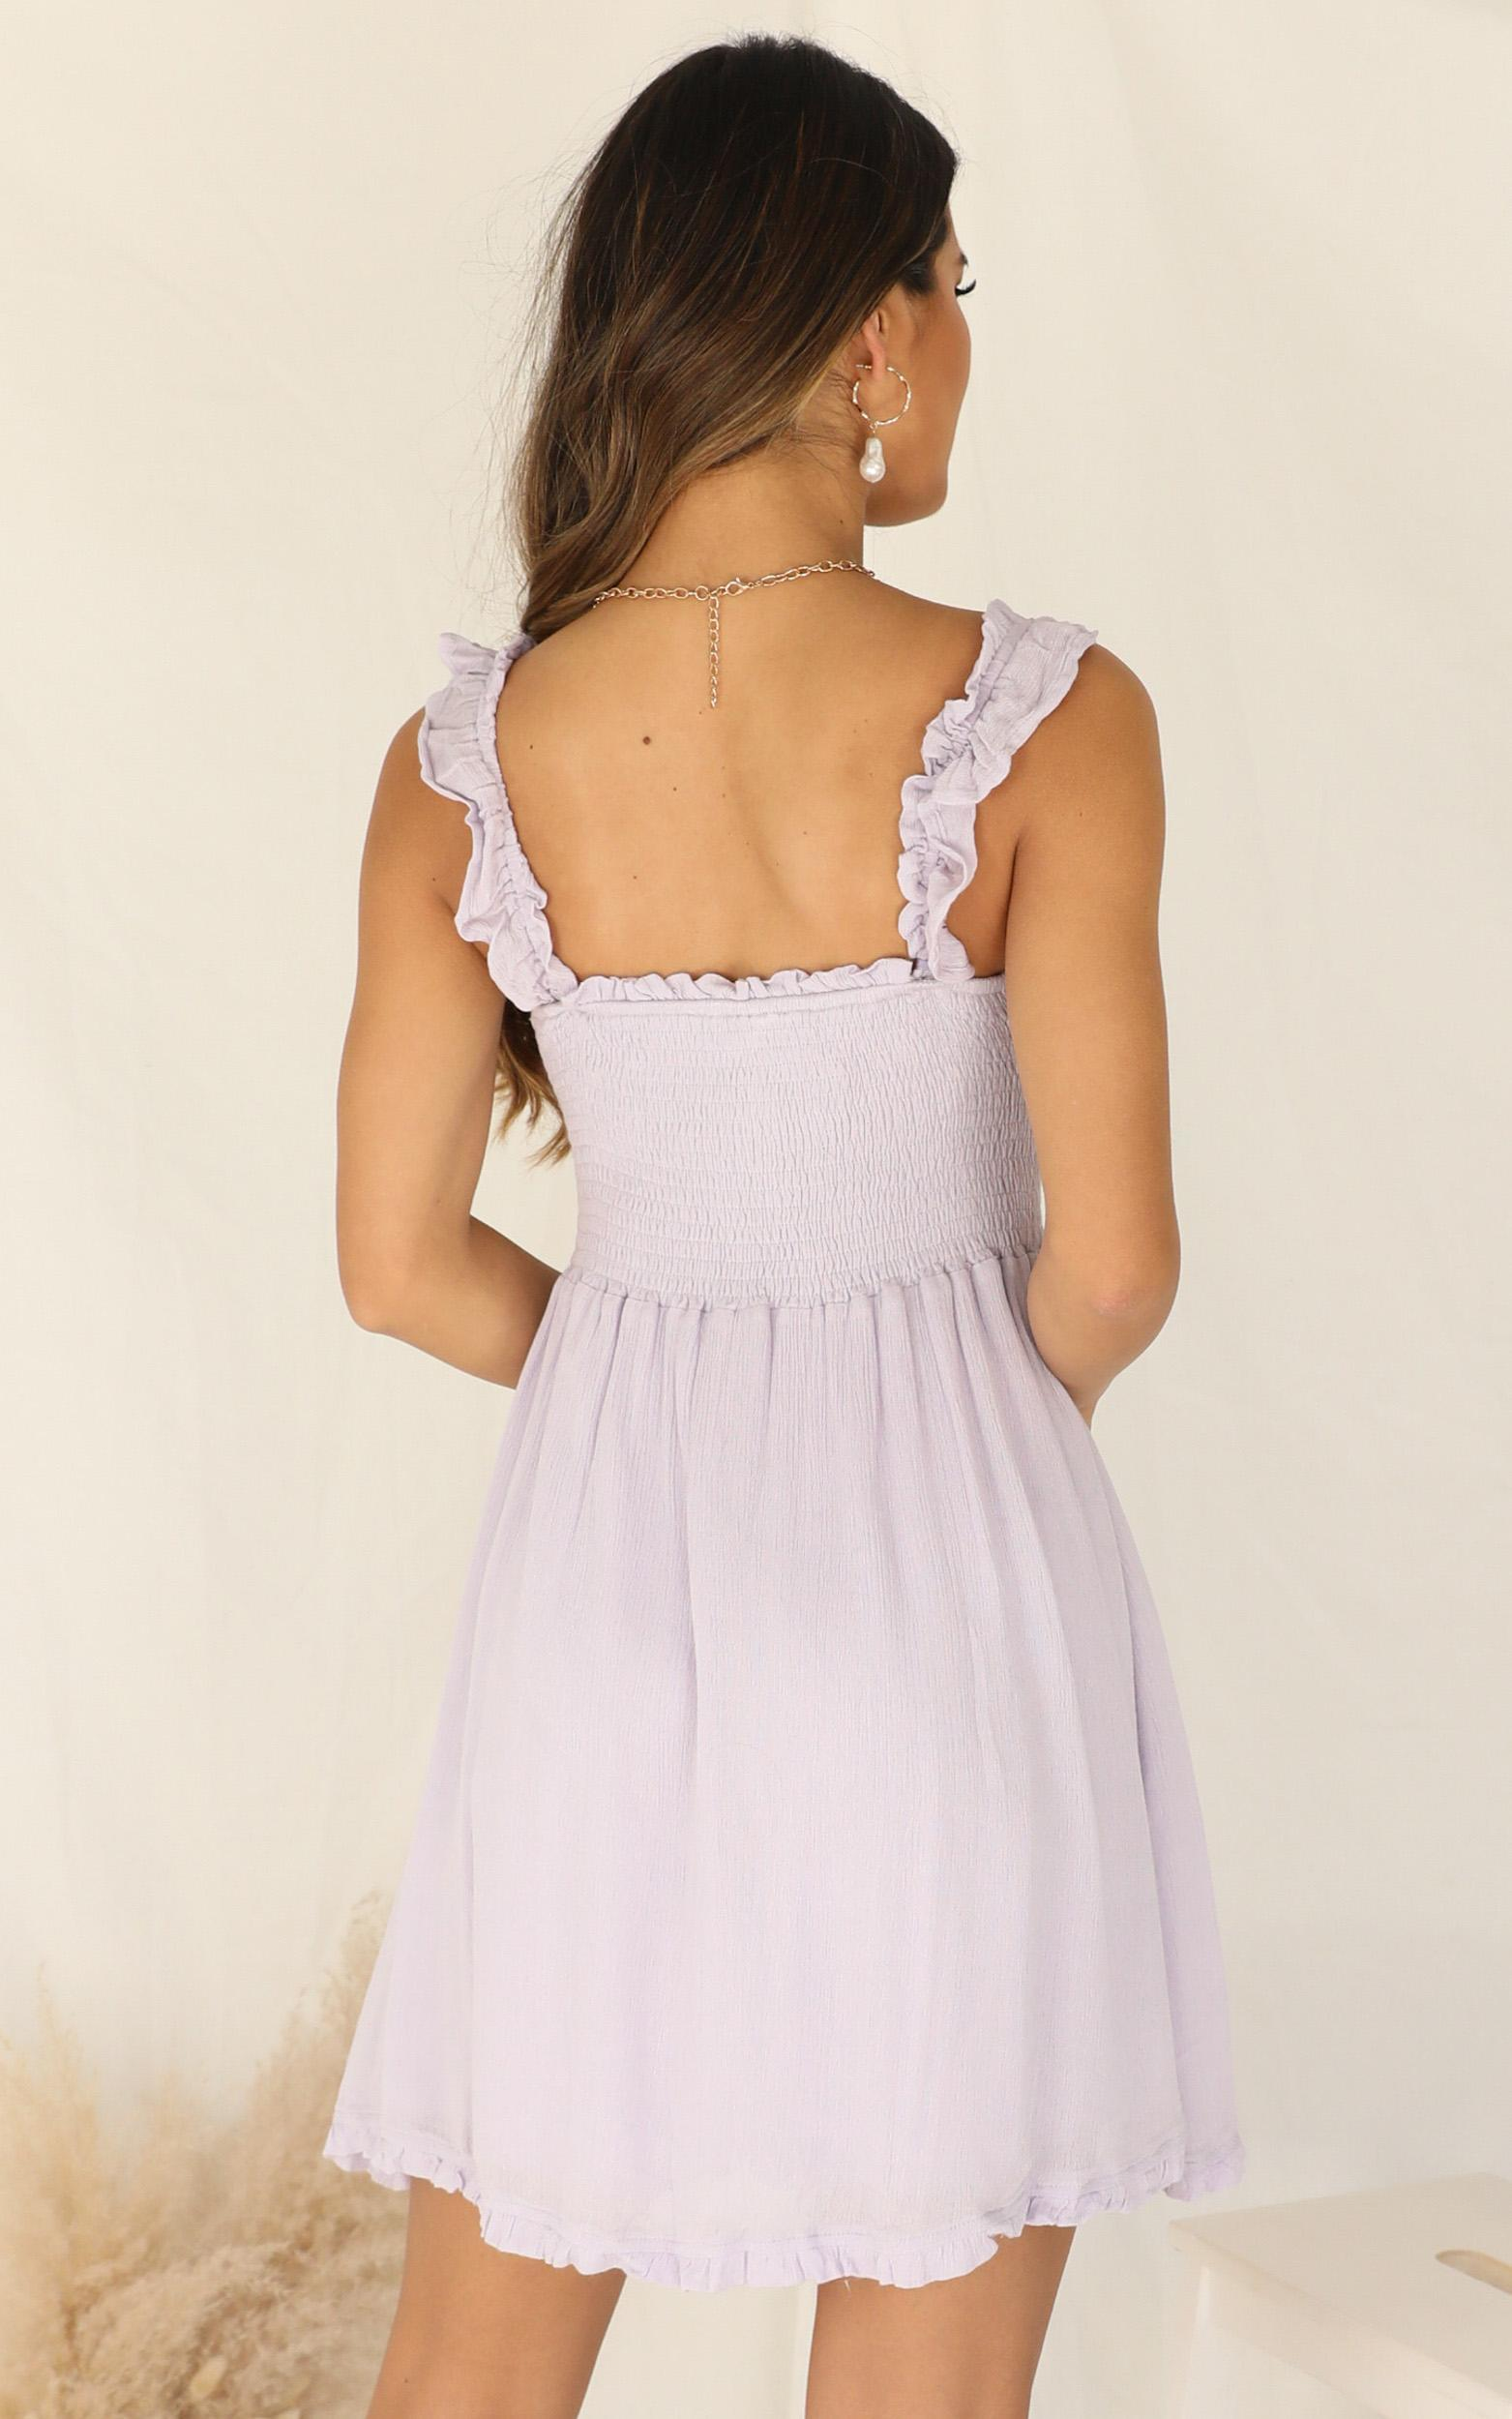 Chill With You Dress in lilac - 6 (XS), Purple, hi-res image number null